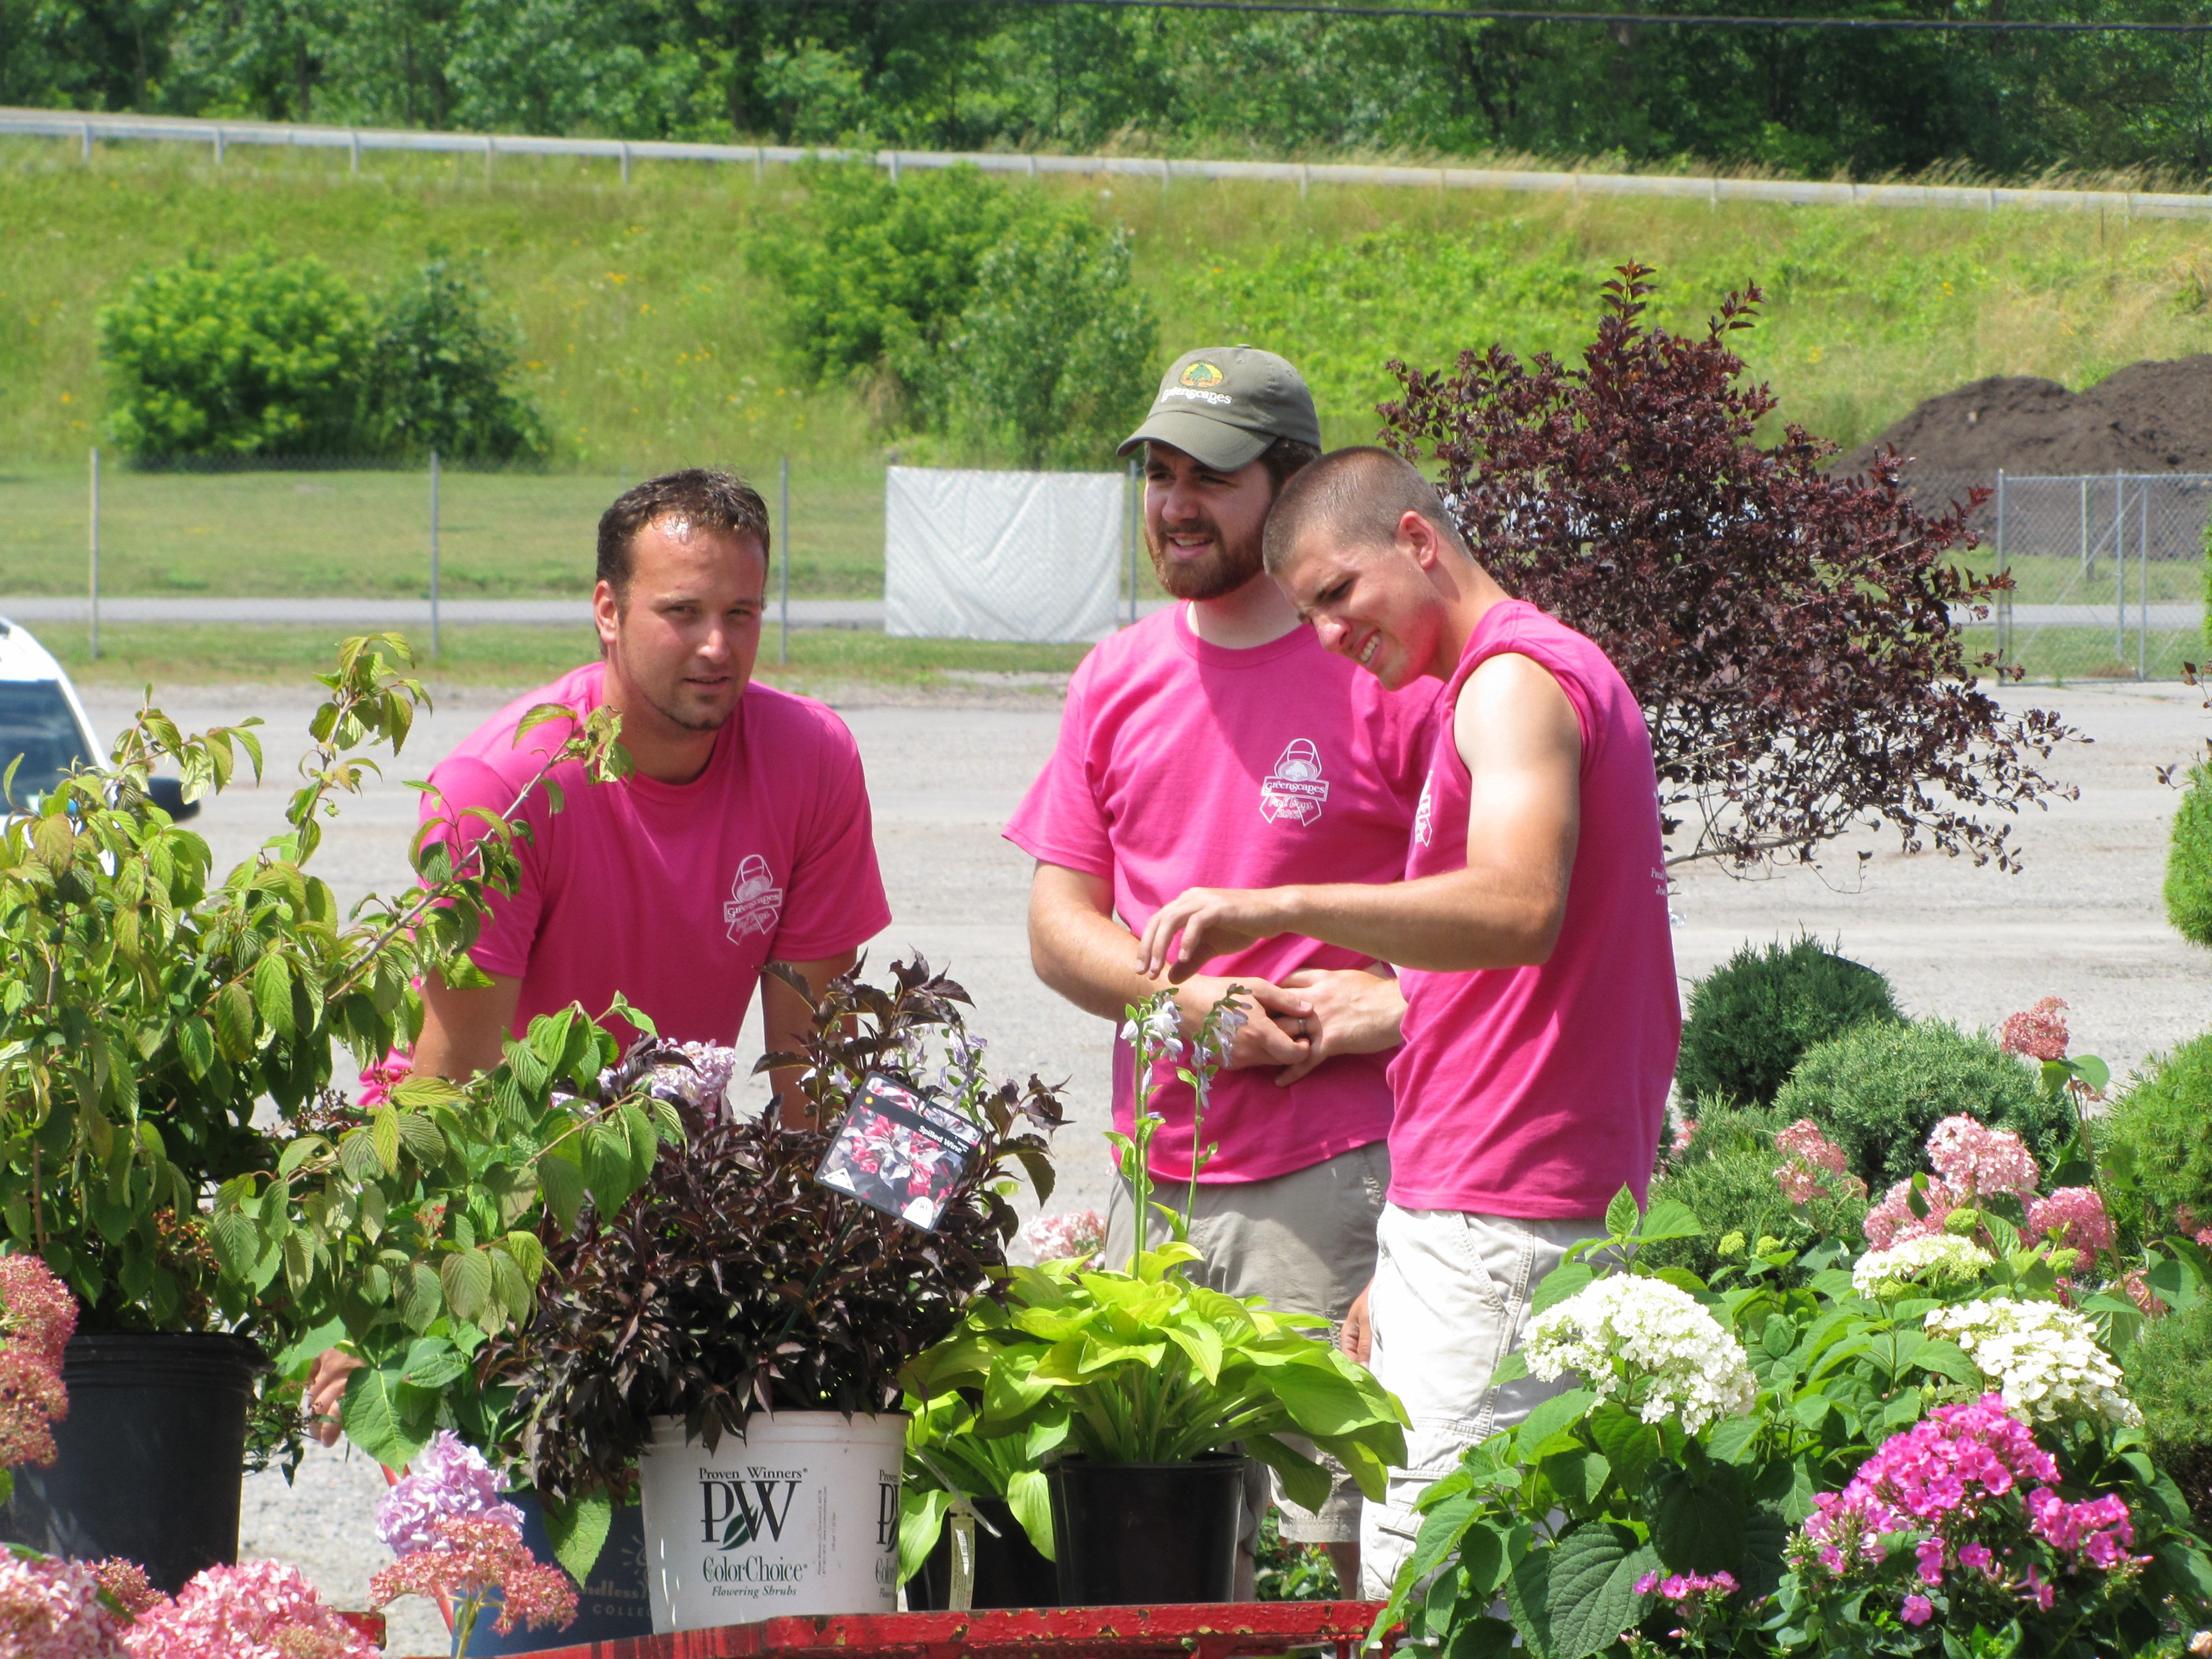 (Lu003eR) From Our Pink Days 2012 Event Landscape Crew Member Matt,